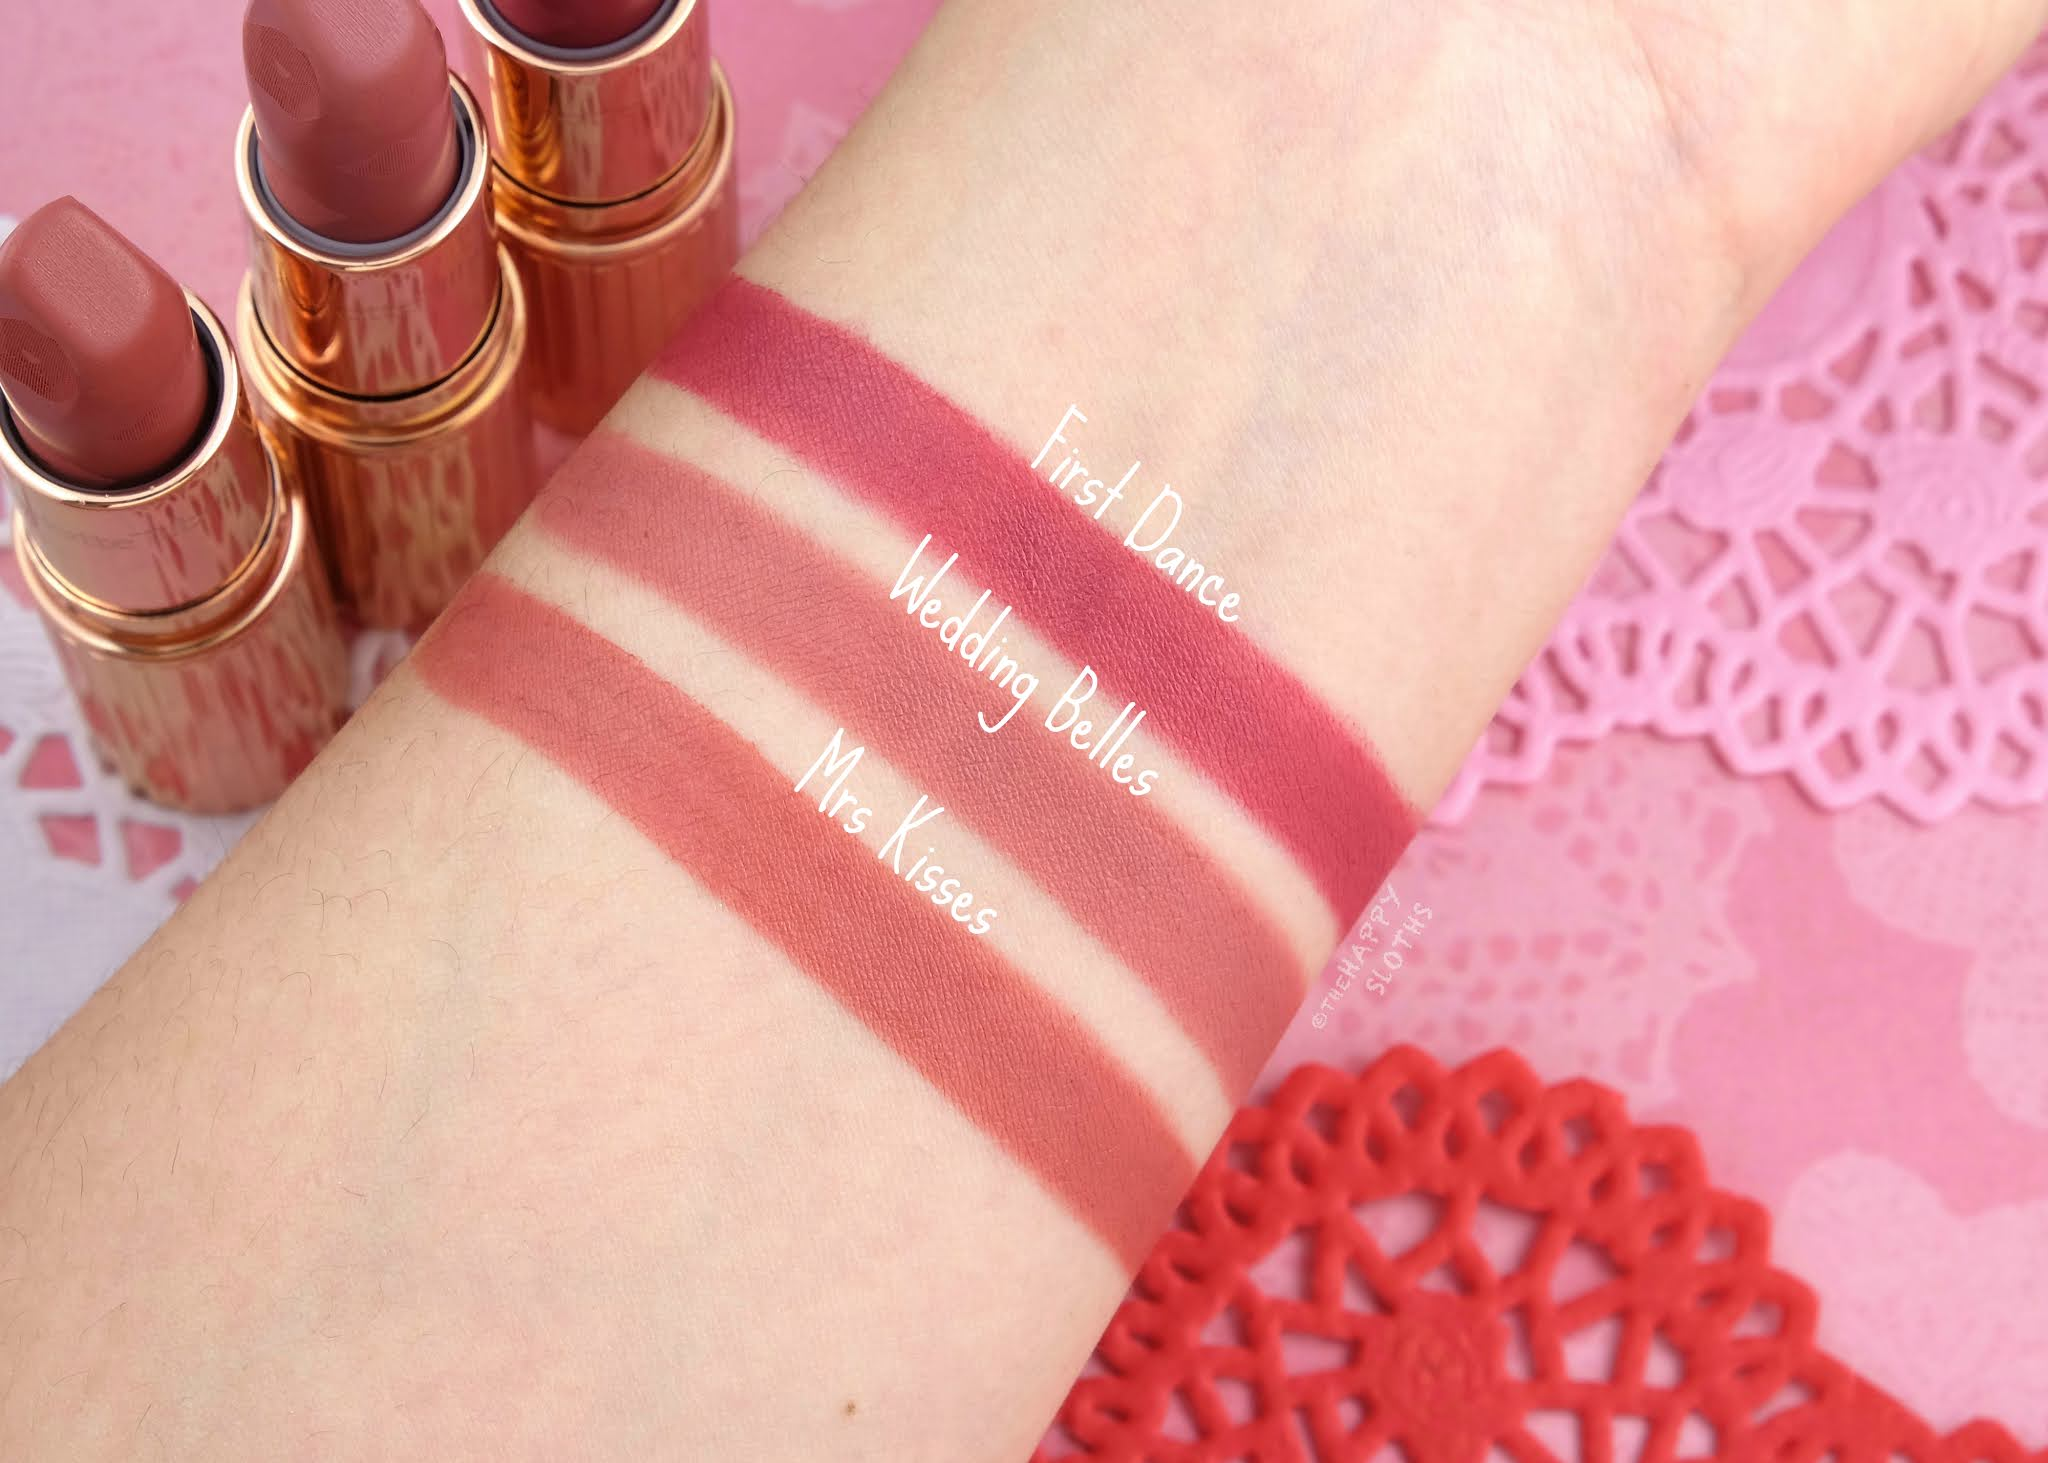 Charlotte Tilbury | *NEW* Love Filter Matte Revolution Lipsticks: Review and Swatches